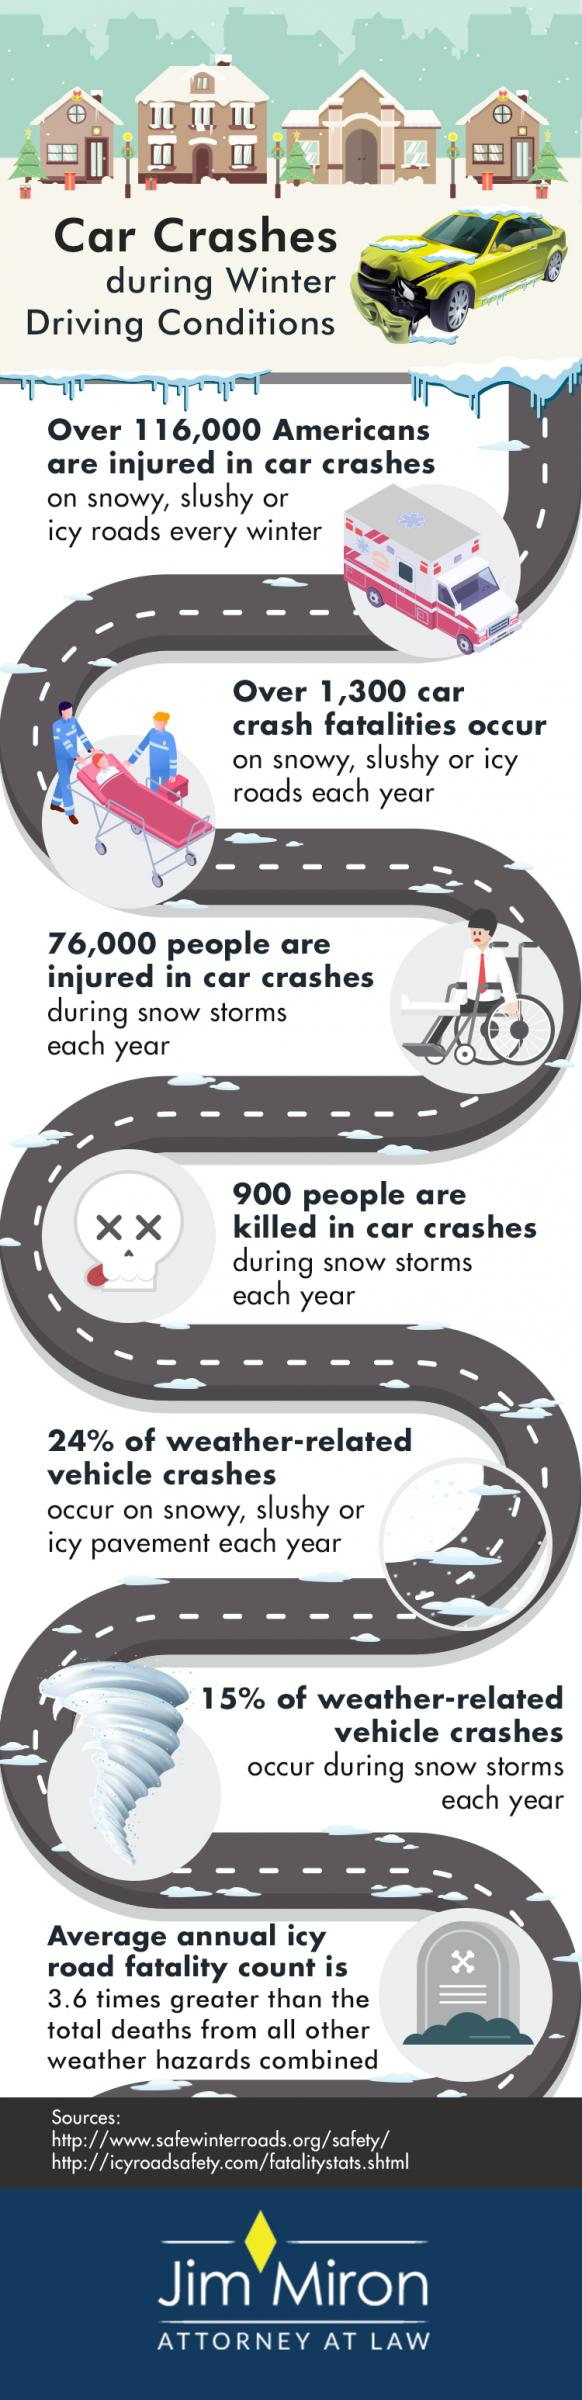 infographic- statistics for car crashes during winter driving conditions